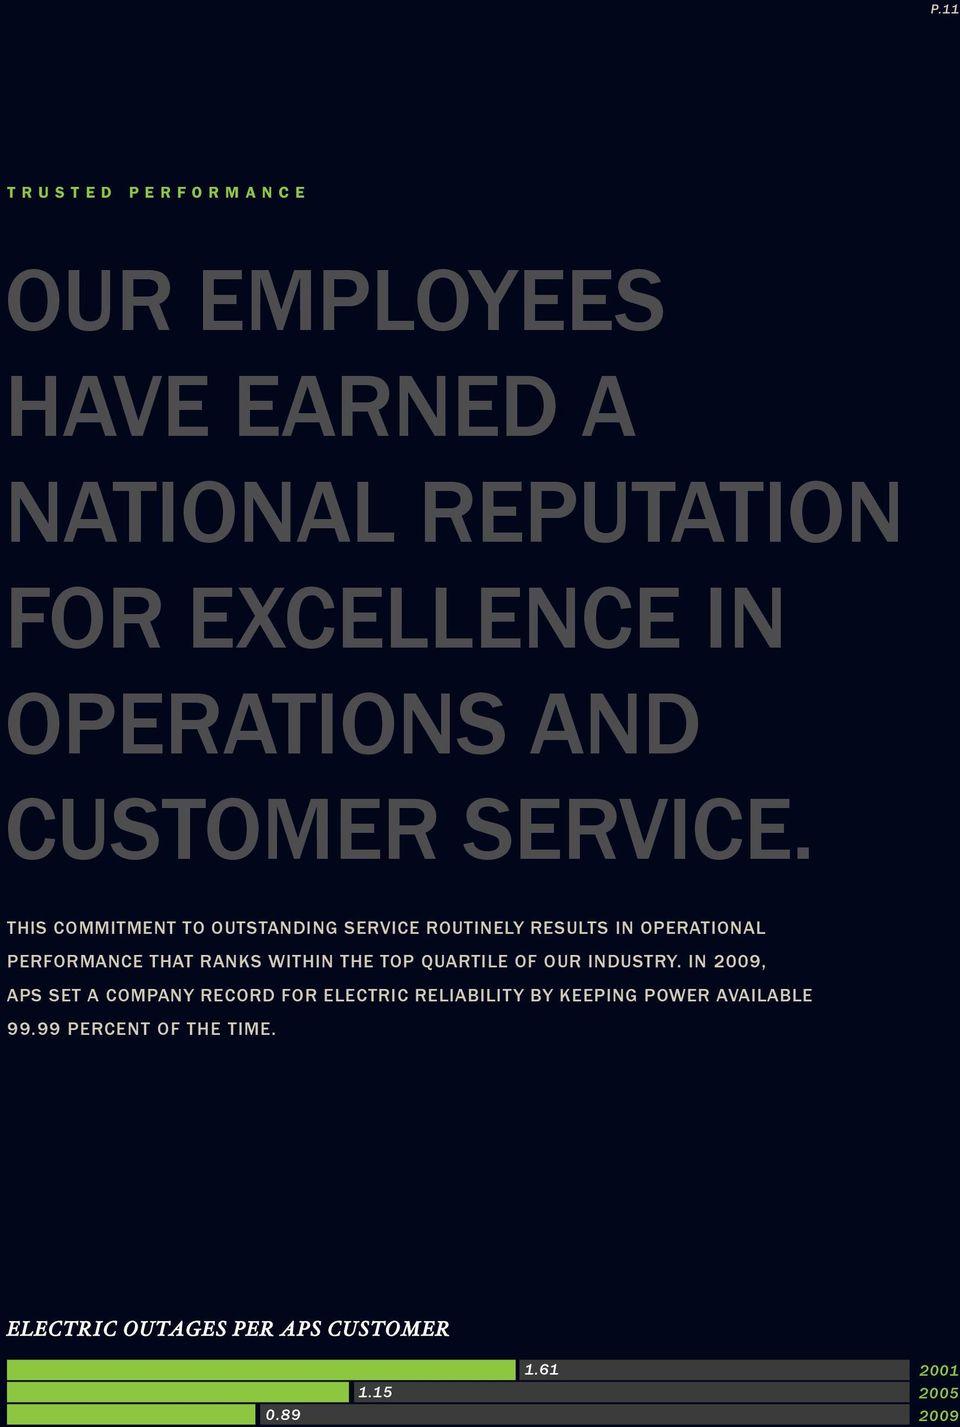 This commitment to outstanding service routinely results in operational performance THAT RANKS within the top